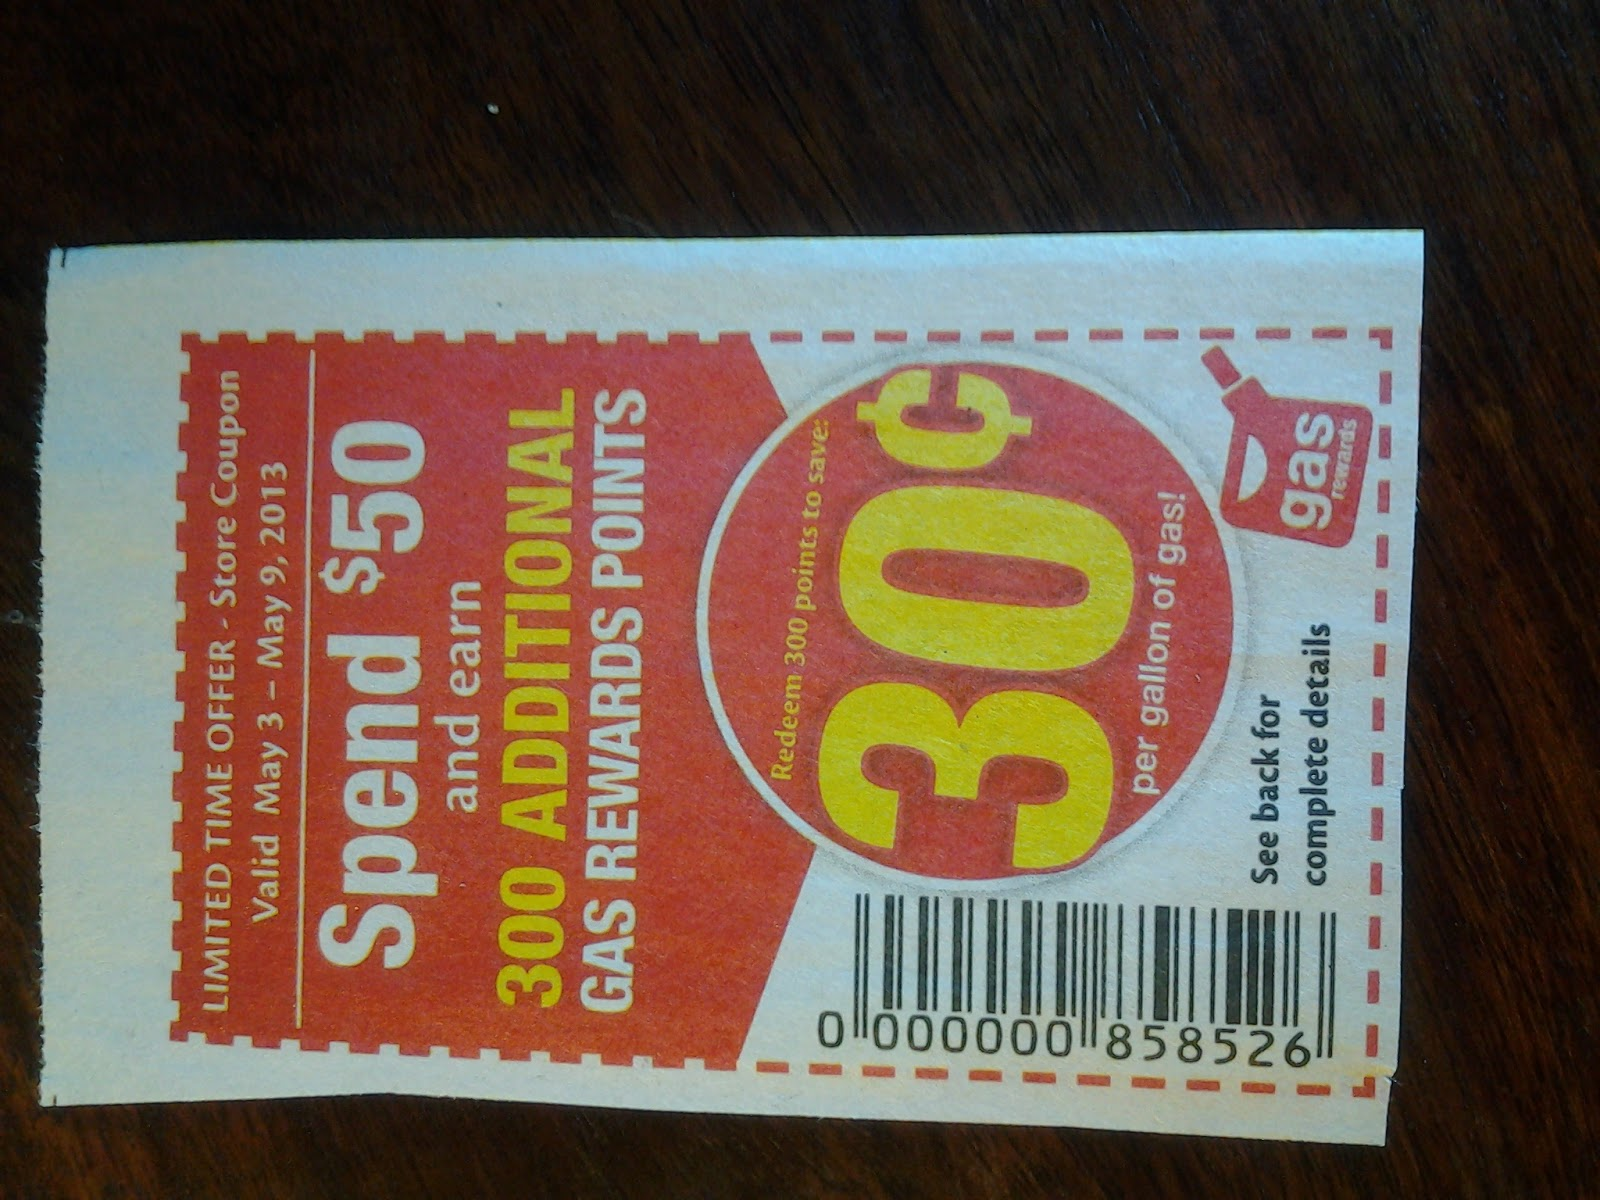 Free Bottle Of Vo5 Salon Series furthermore Giant Home Mailer Coupons Start Smart additionally Lots Of New High Value Coupons From Betty Crocker together with 74 as well Go Now Free S le Eco Me Cleaning Products. on oscar mayer pulled pork coupon